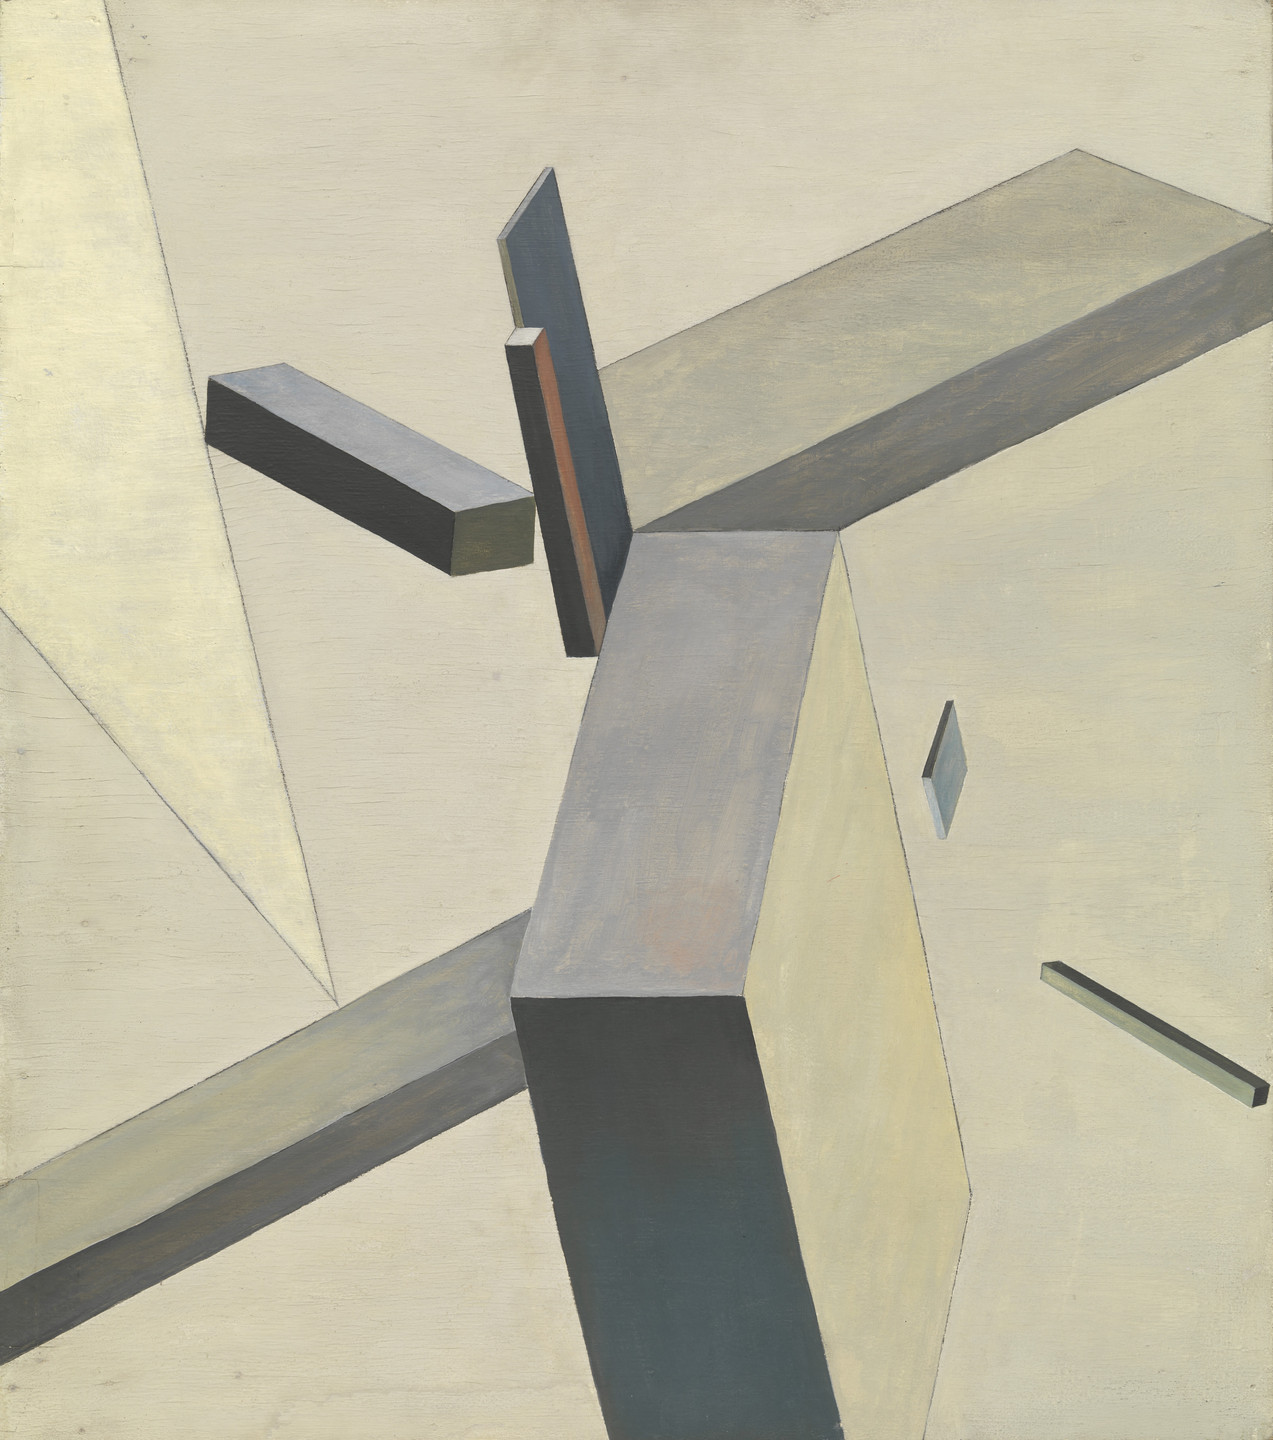 El Lissitzky. Composition. 1922